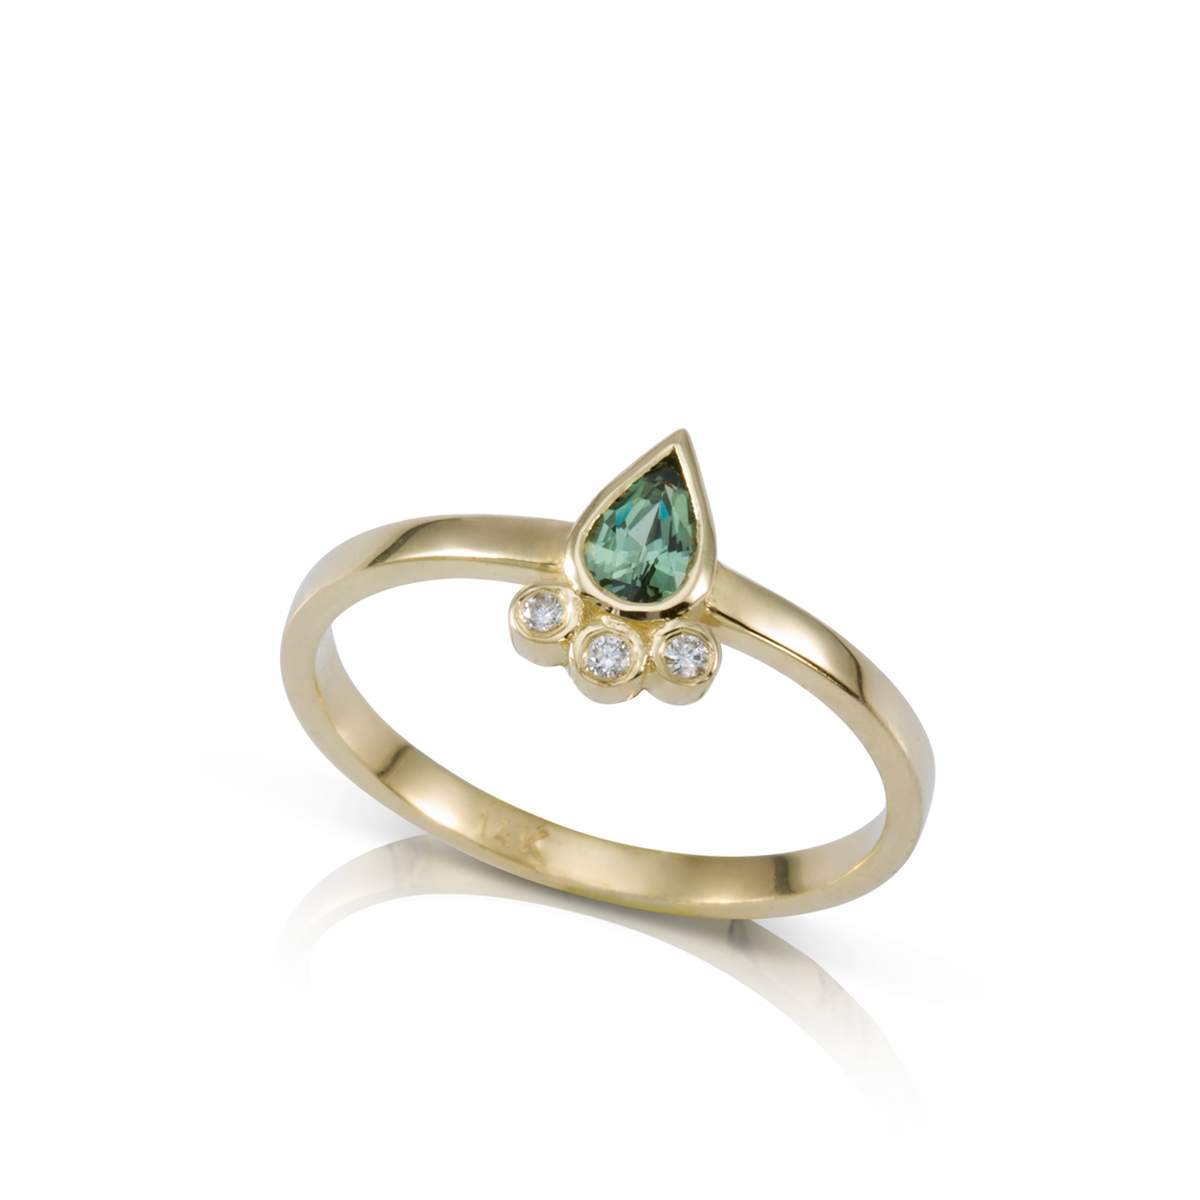 Gold ring with Pear cut green sapphire and diamonds